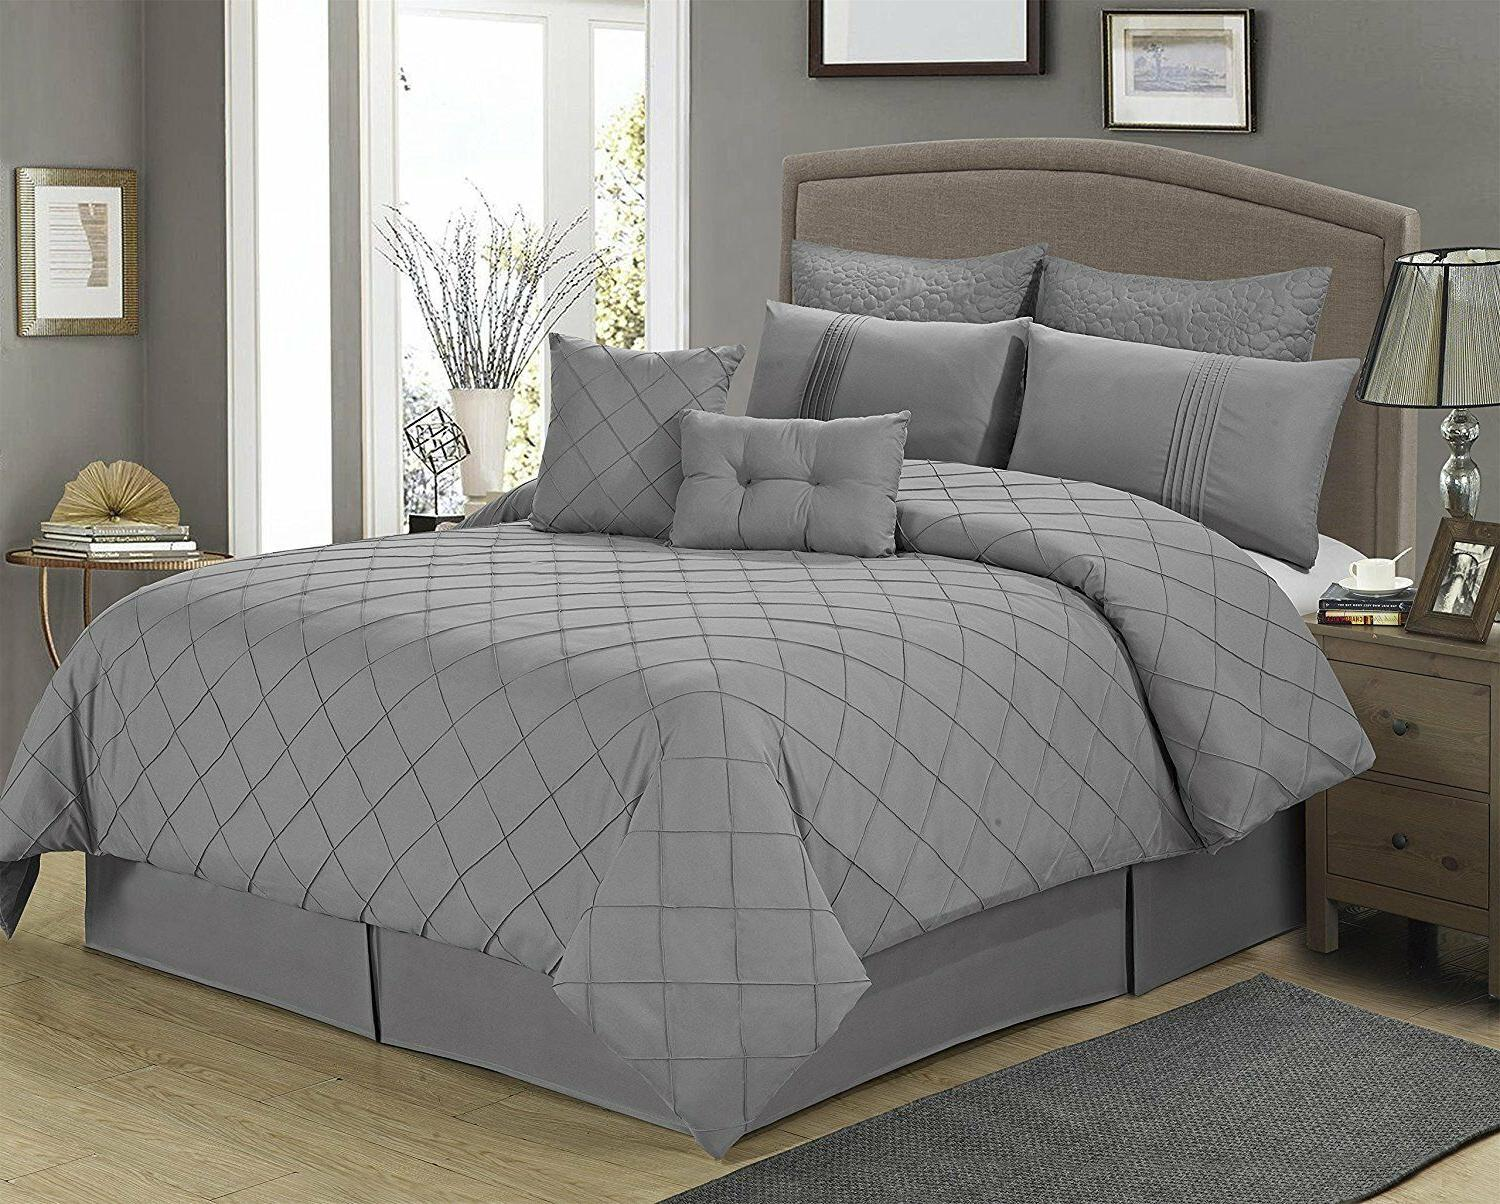 8 piece manchester gray tuc pattern comforter